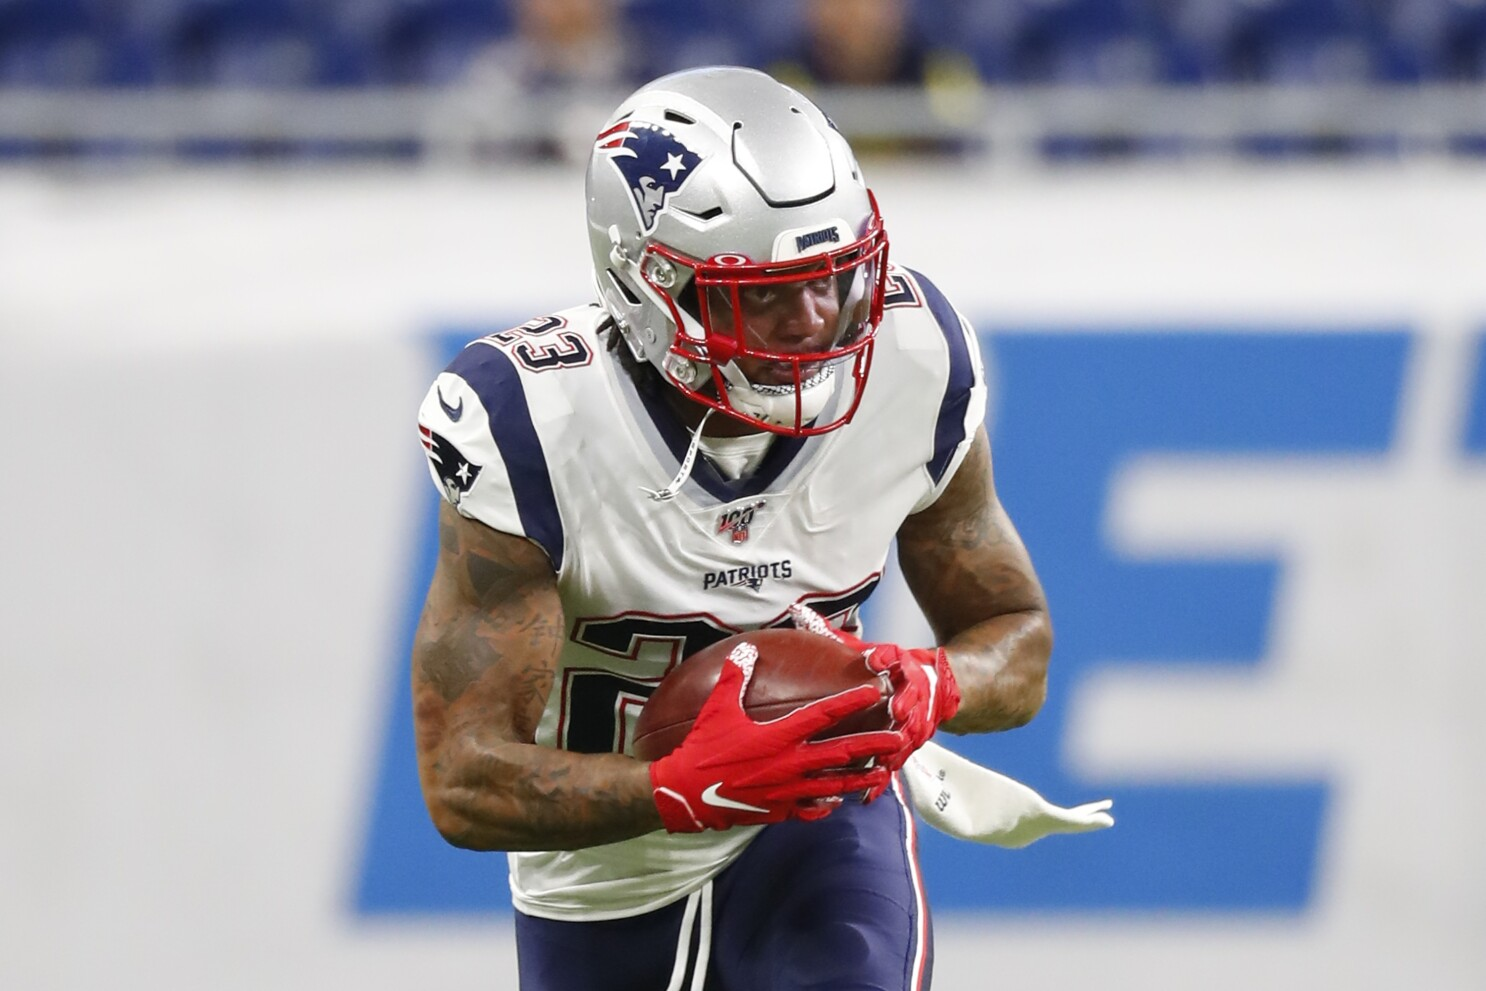 Patriots safety Patrick Chung indicted on cocaine charge